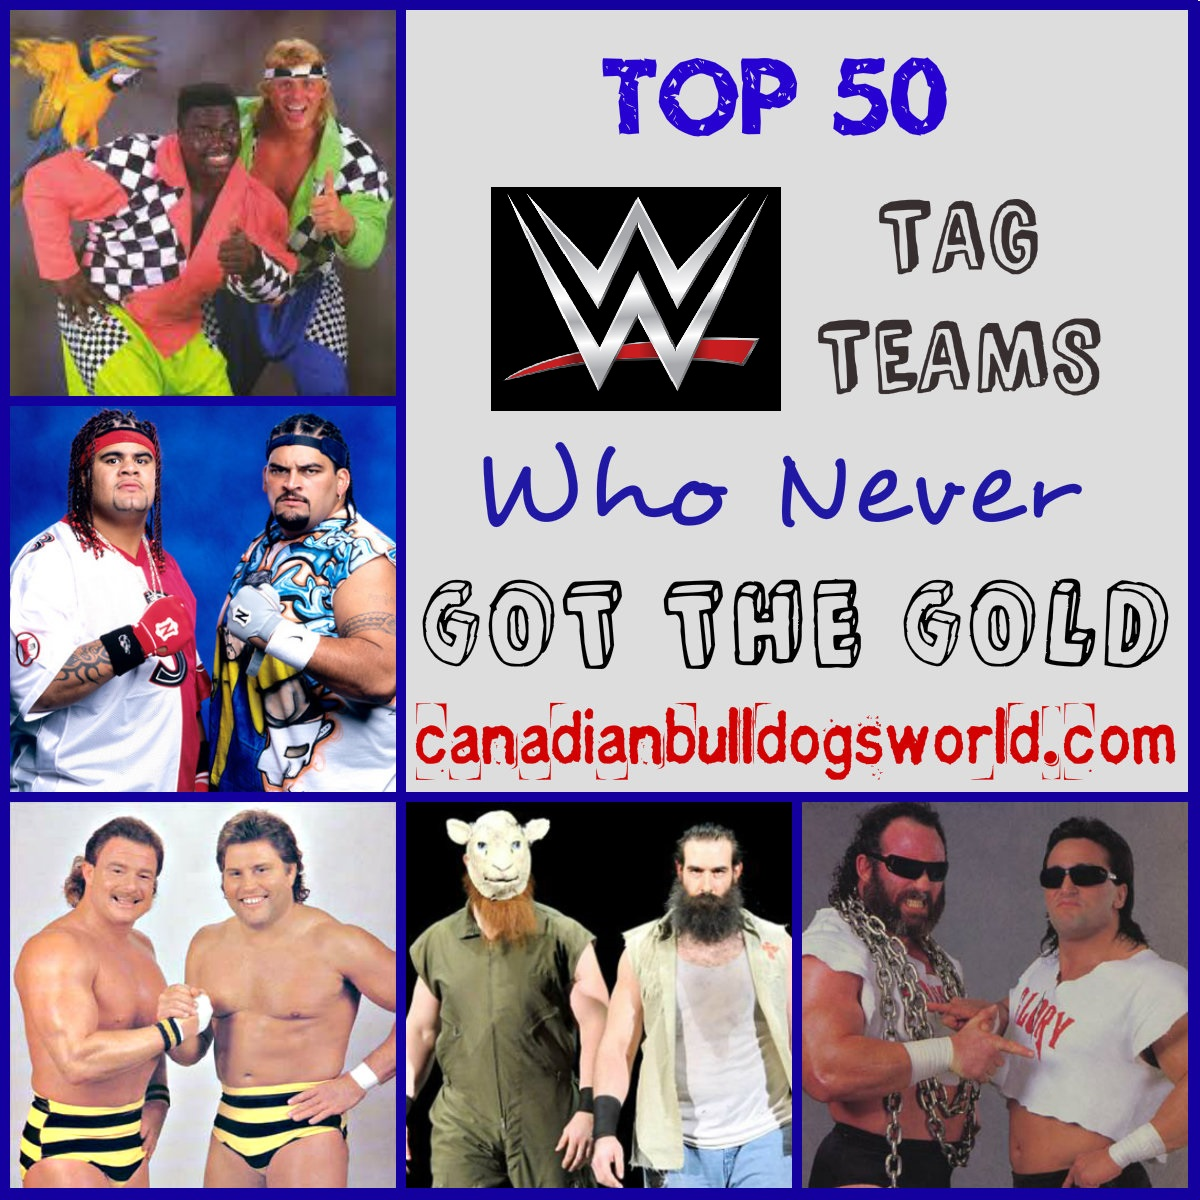 Top 50 Tag Teams Who Never Got The Gold